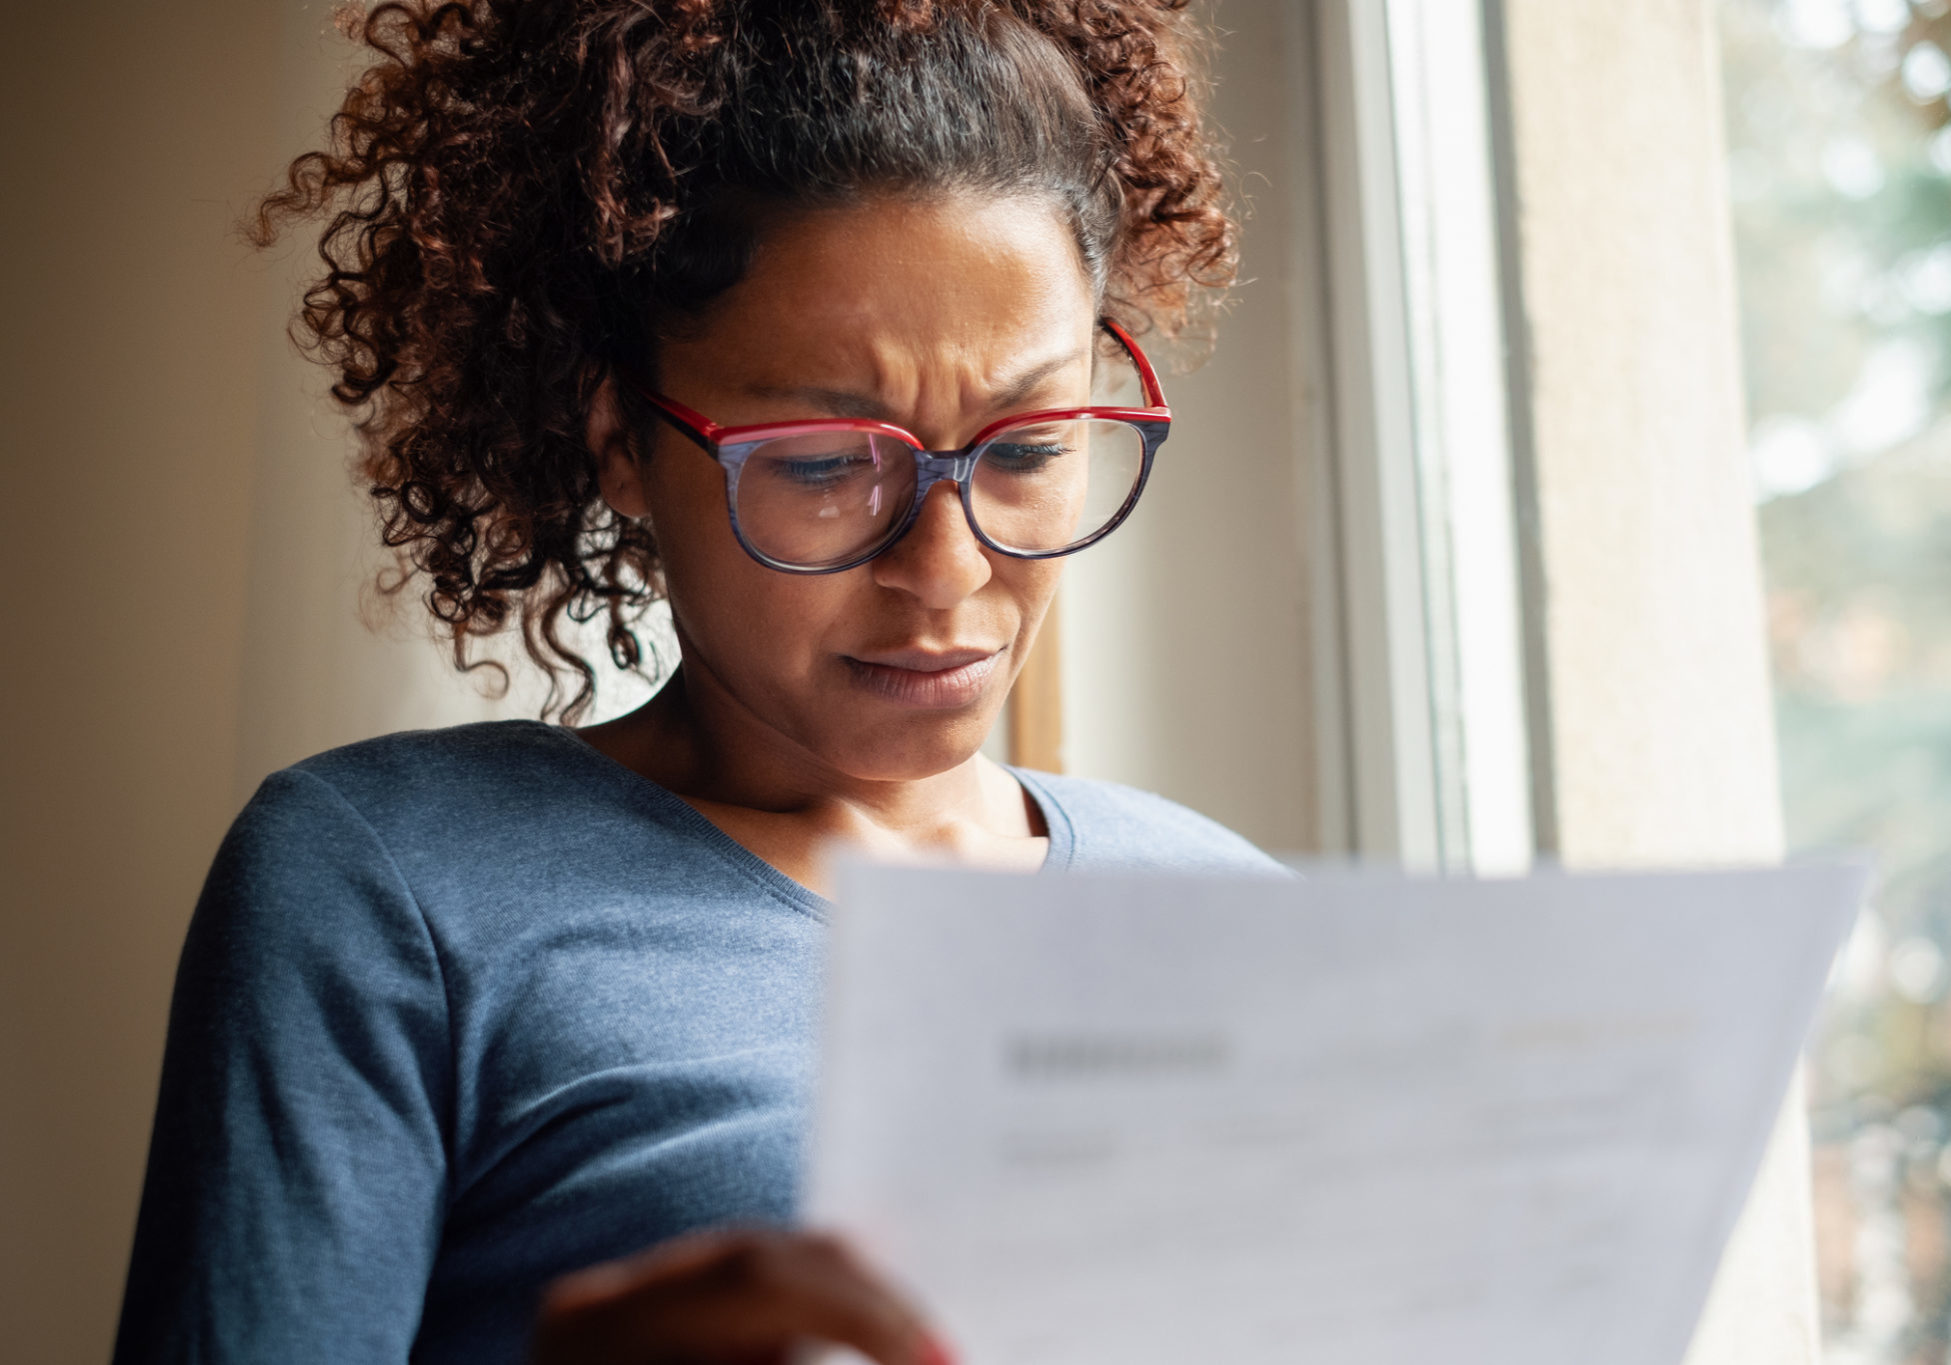 Woman worried about sheet of paper